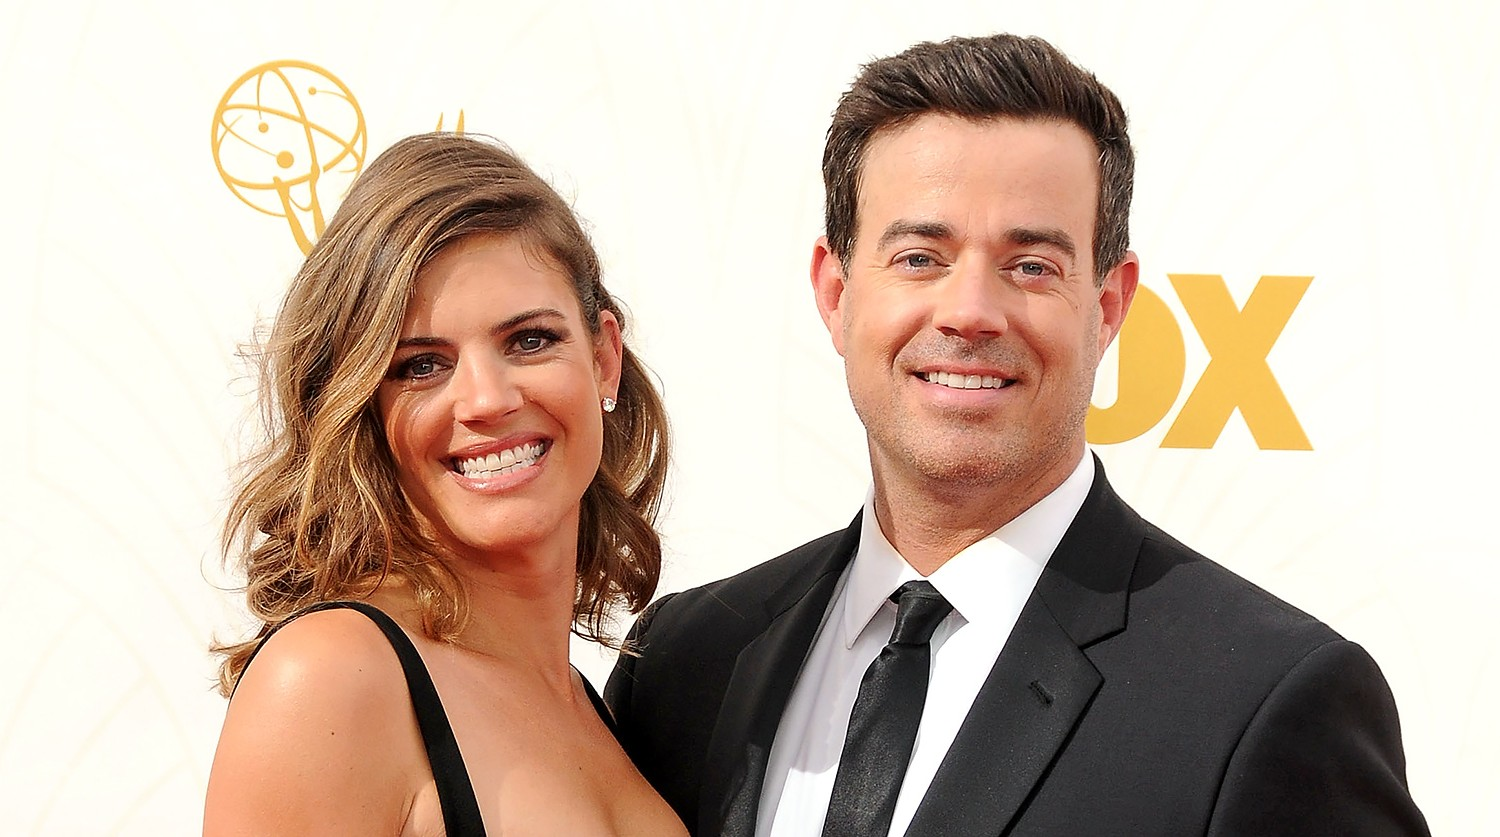 Siri Pinter and Carson Daly get married on December 23.